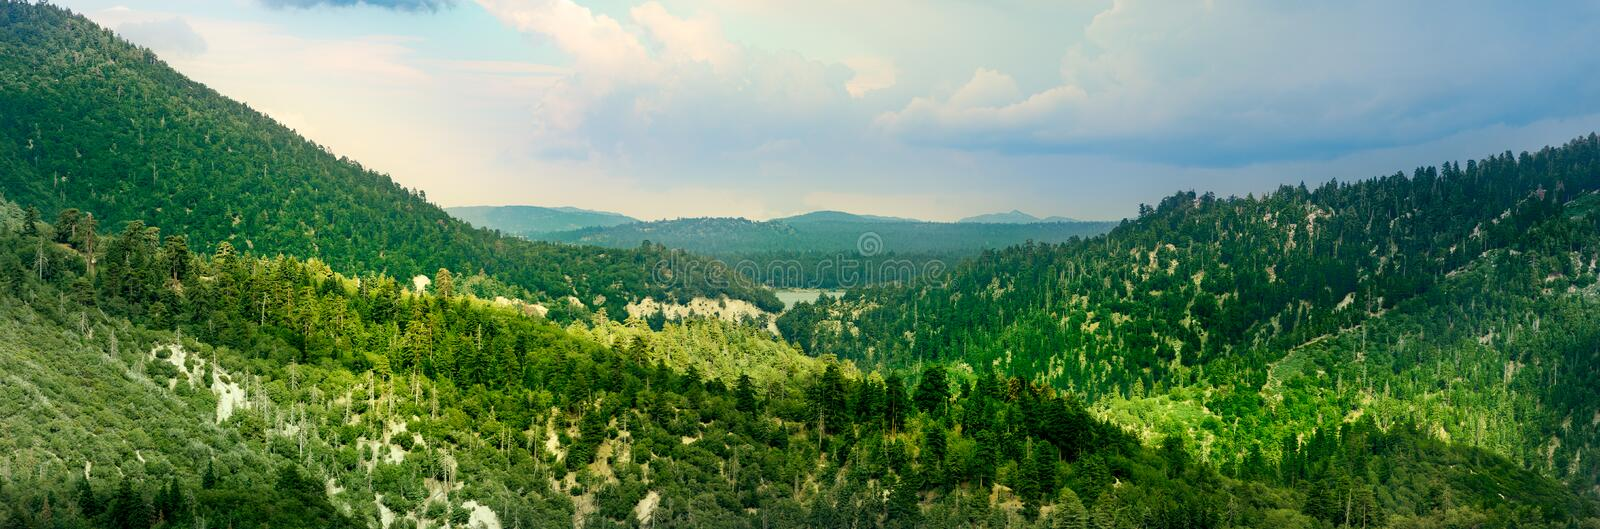 Big Bear Lake view from the mountain. A panoramic view towards Big Bear lake. This Mountain top is covered with trees royalty free stock photo